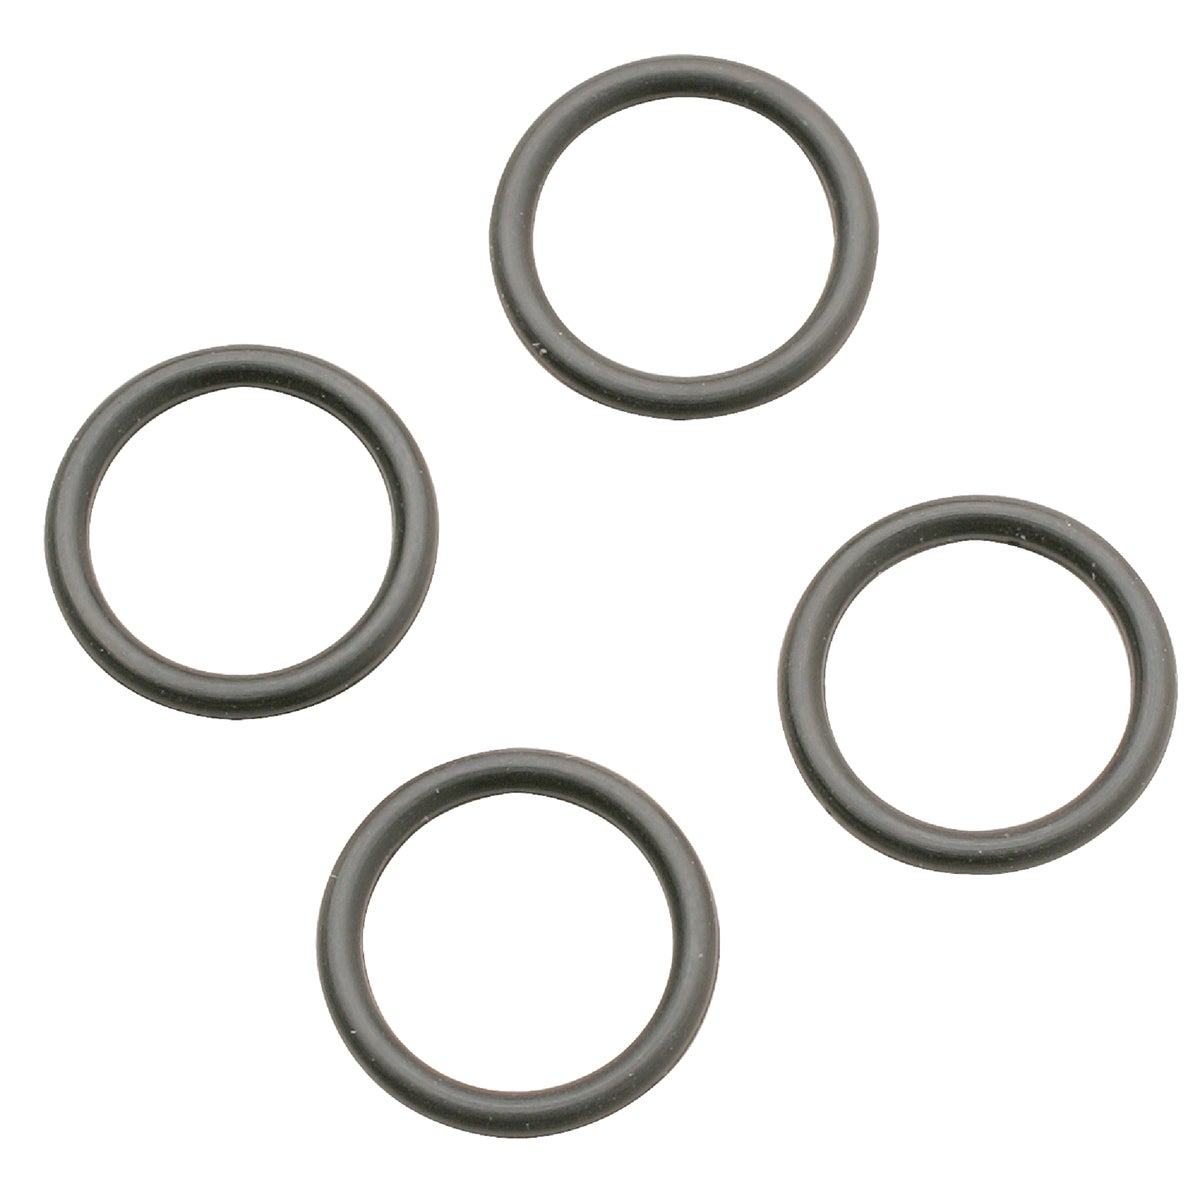 "3/8""ID O-RINGS - 402996 by Plumb Pak/keeney Mfg"